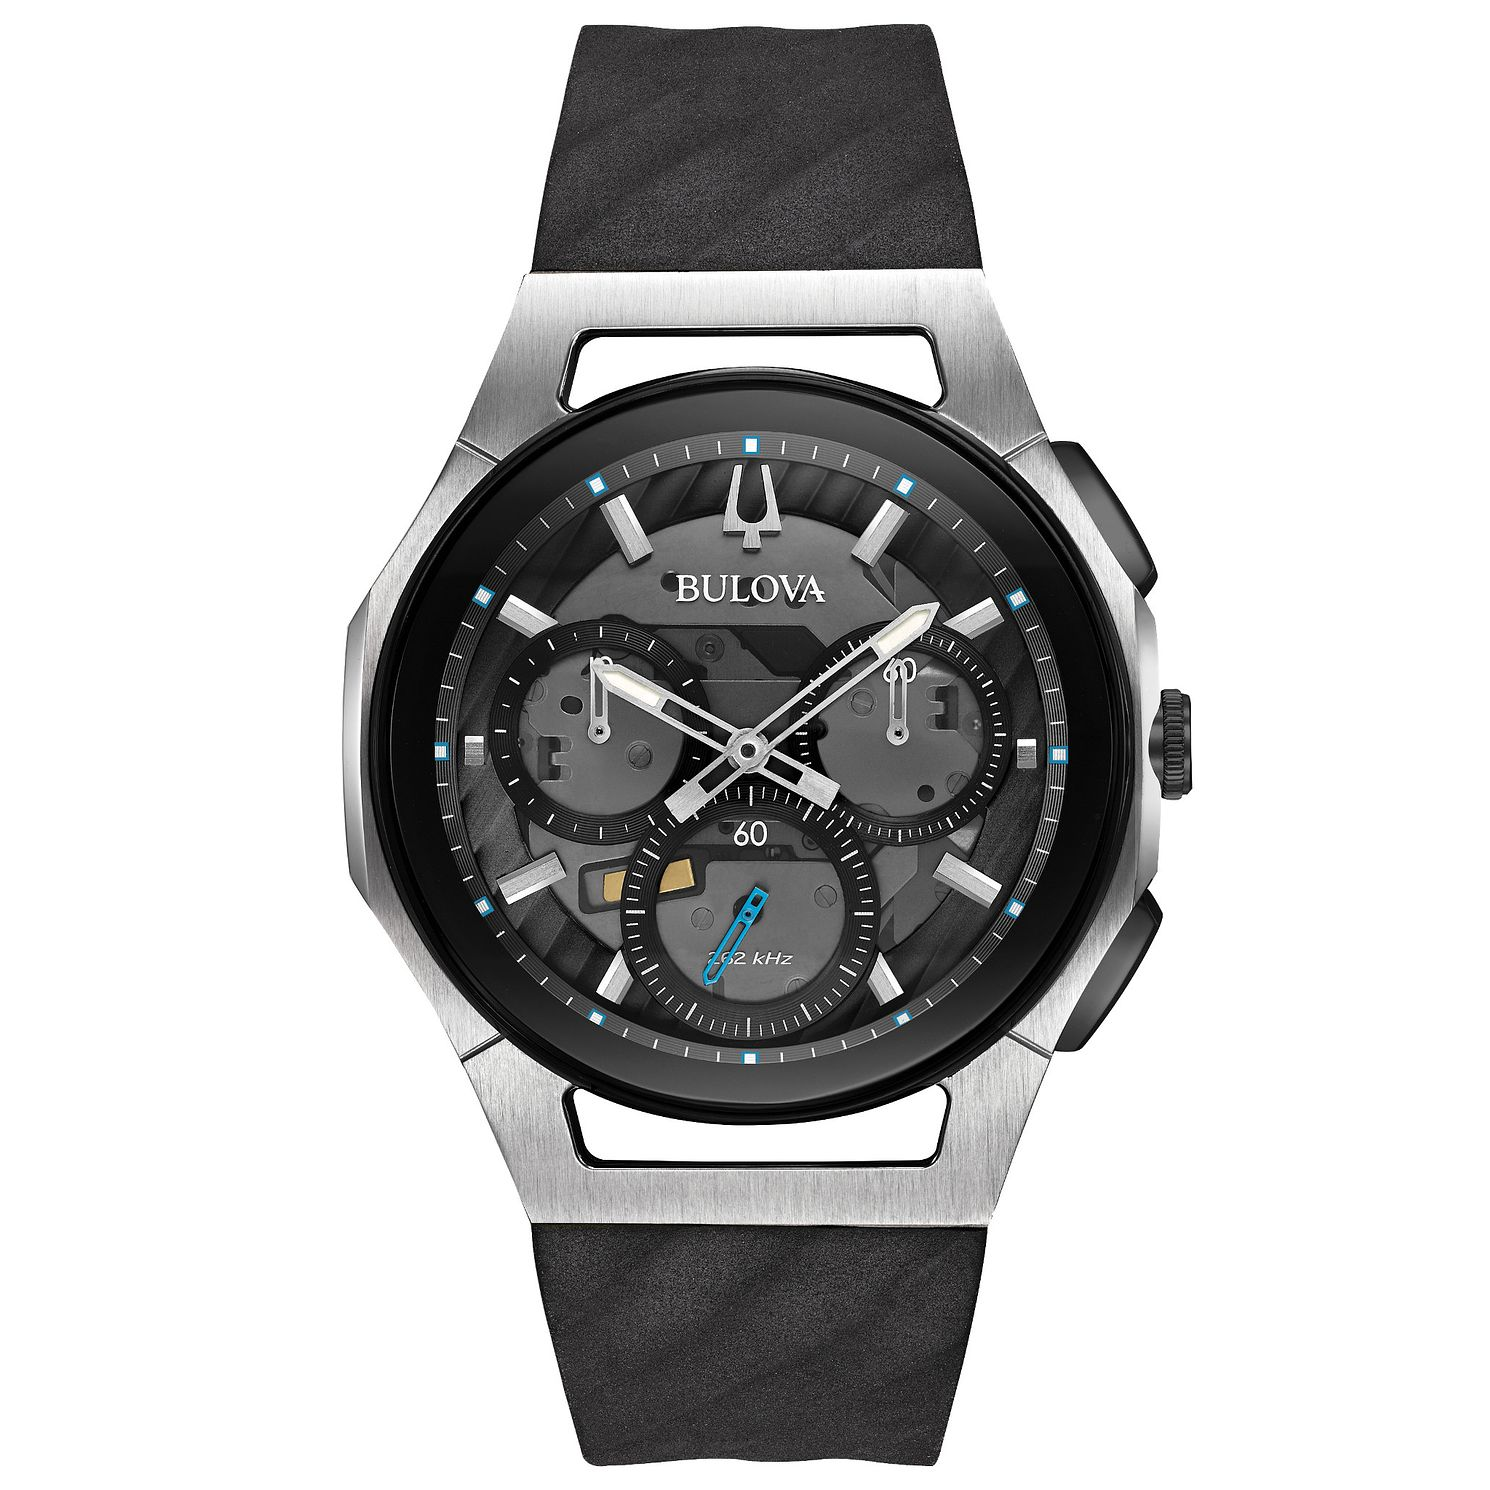 Bulova Men's Curv Chronograph Black Rubber Strap Watch - Product number 5293308